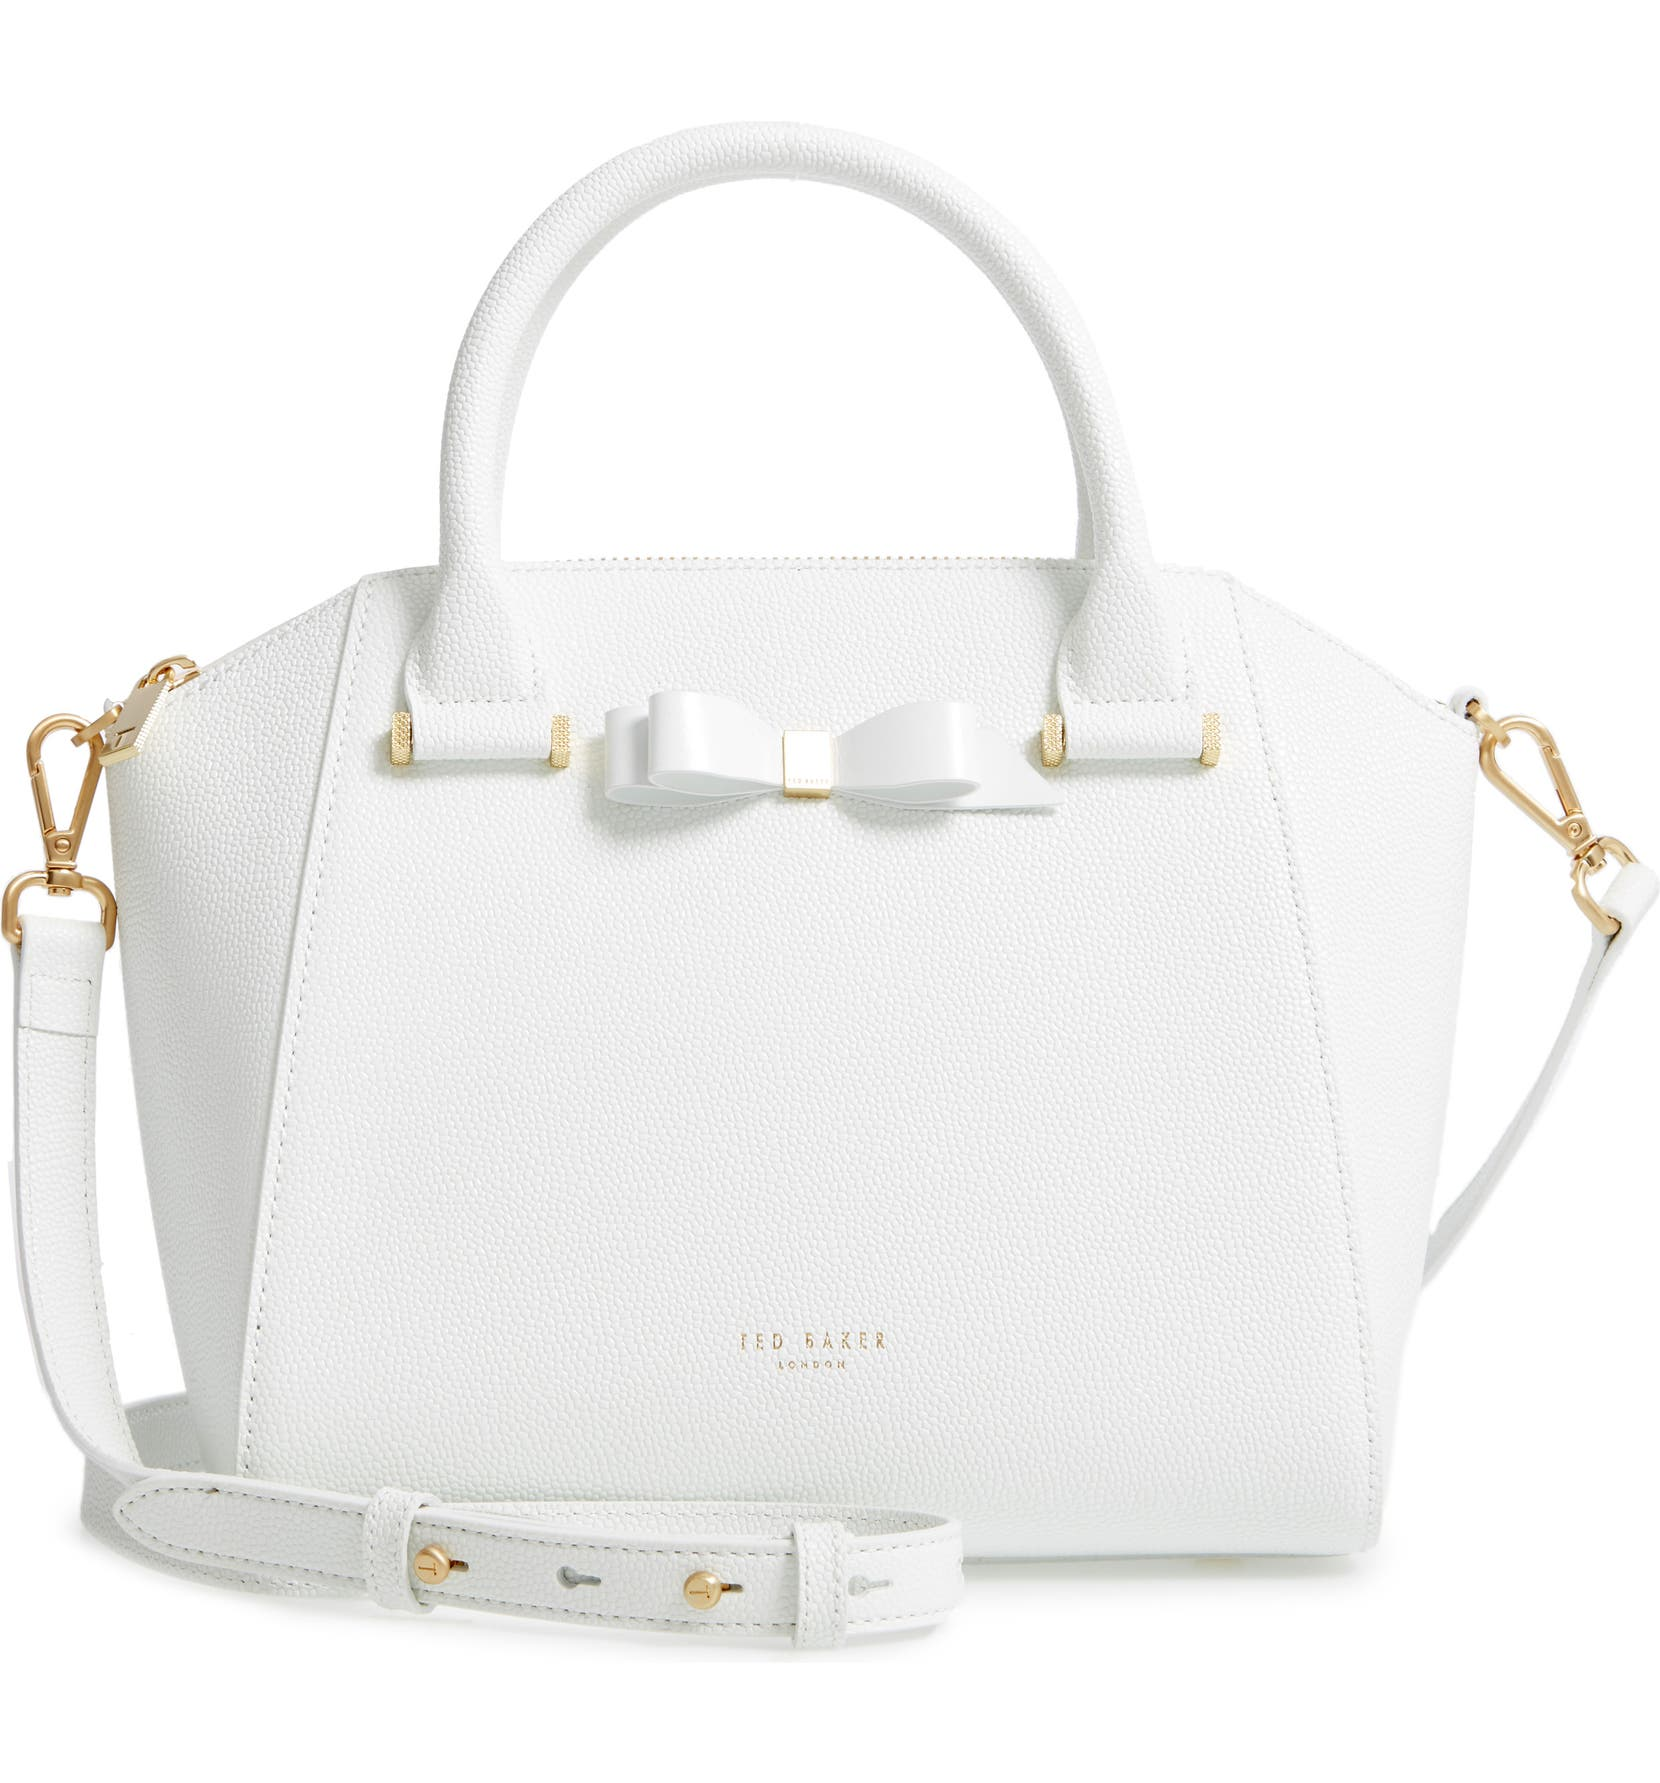 4588bee14 Ted Baker London Janne Bow Leather Tote